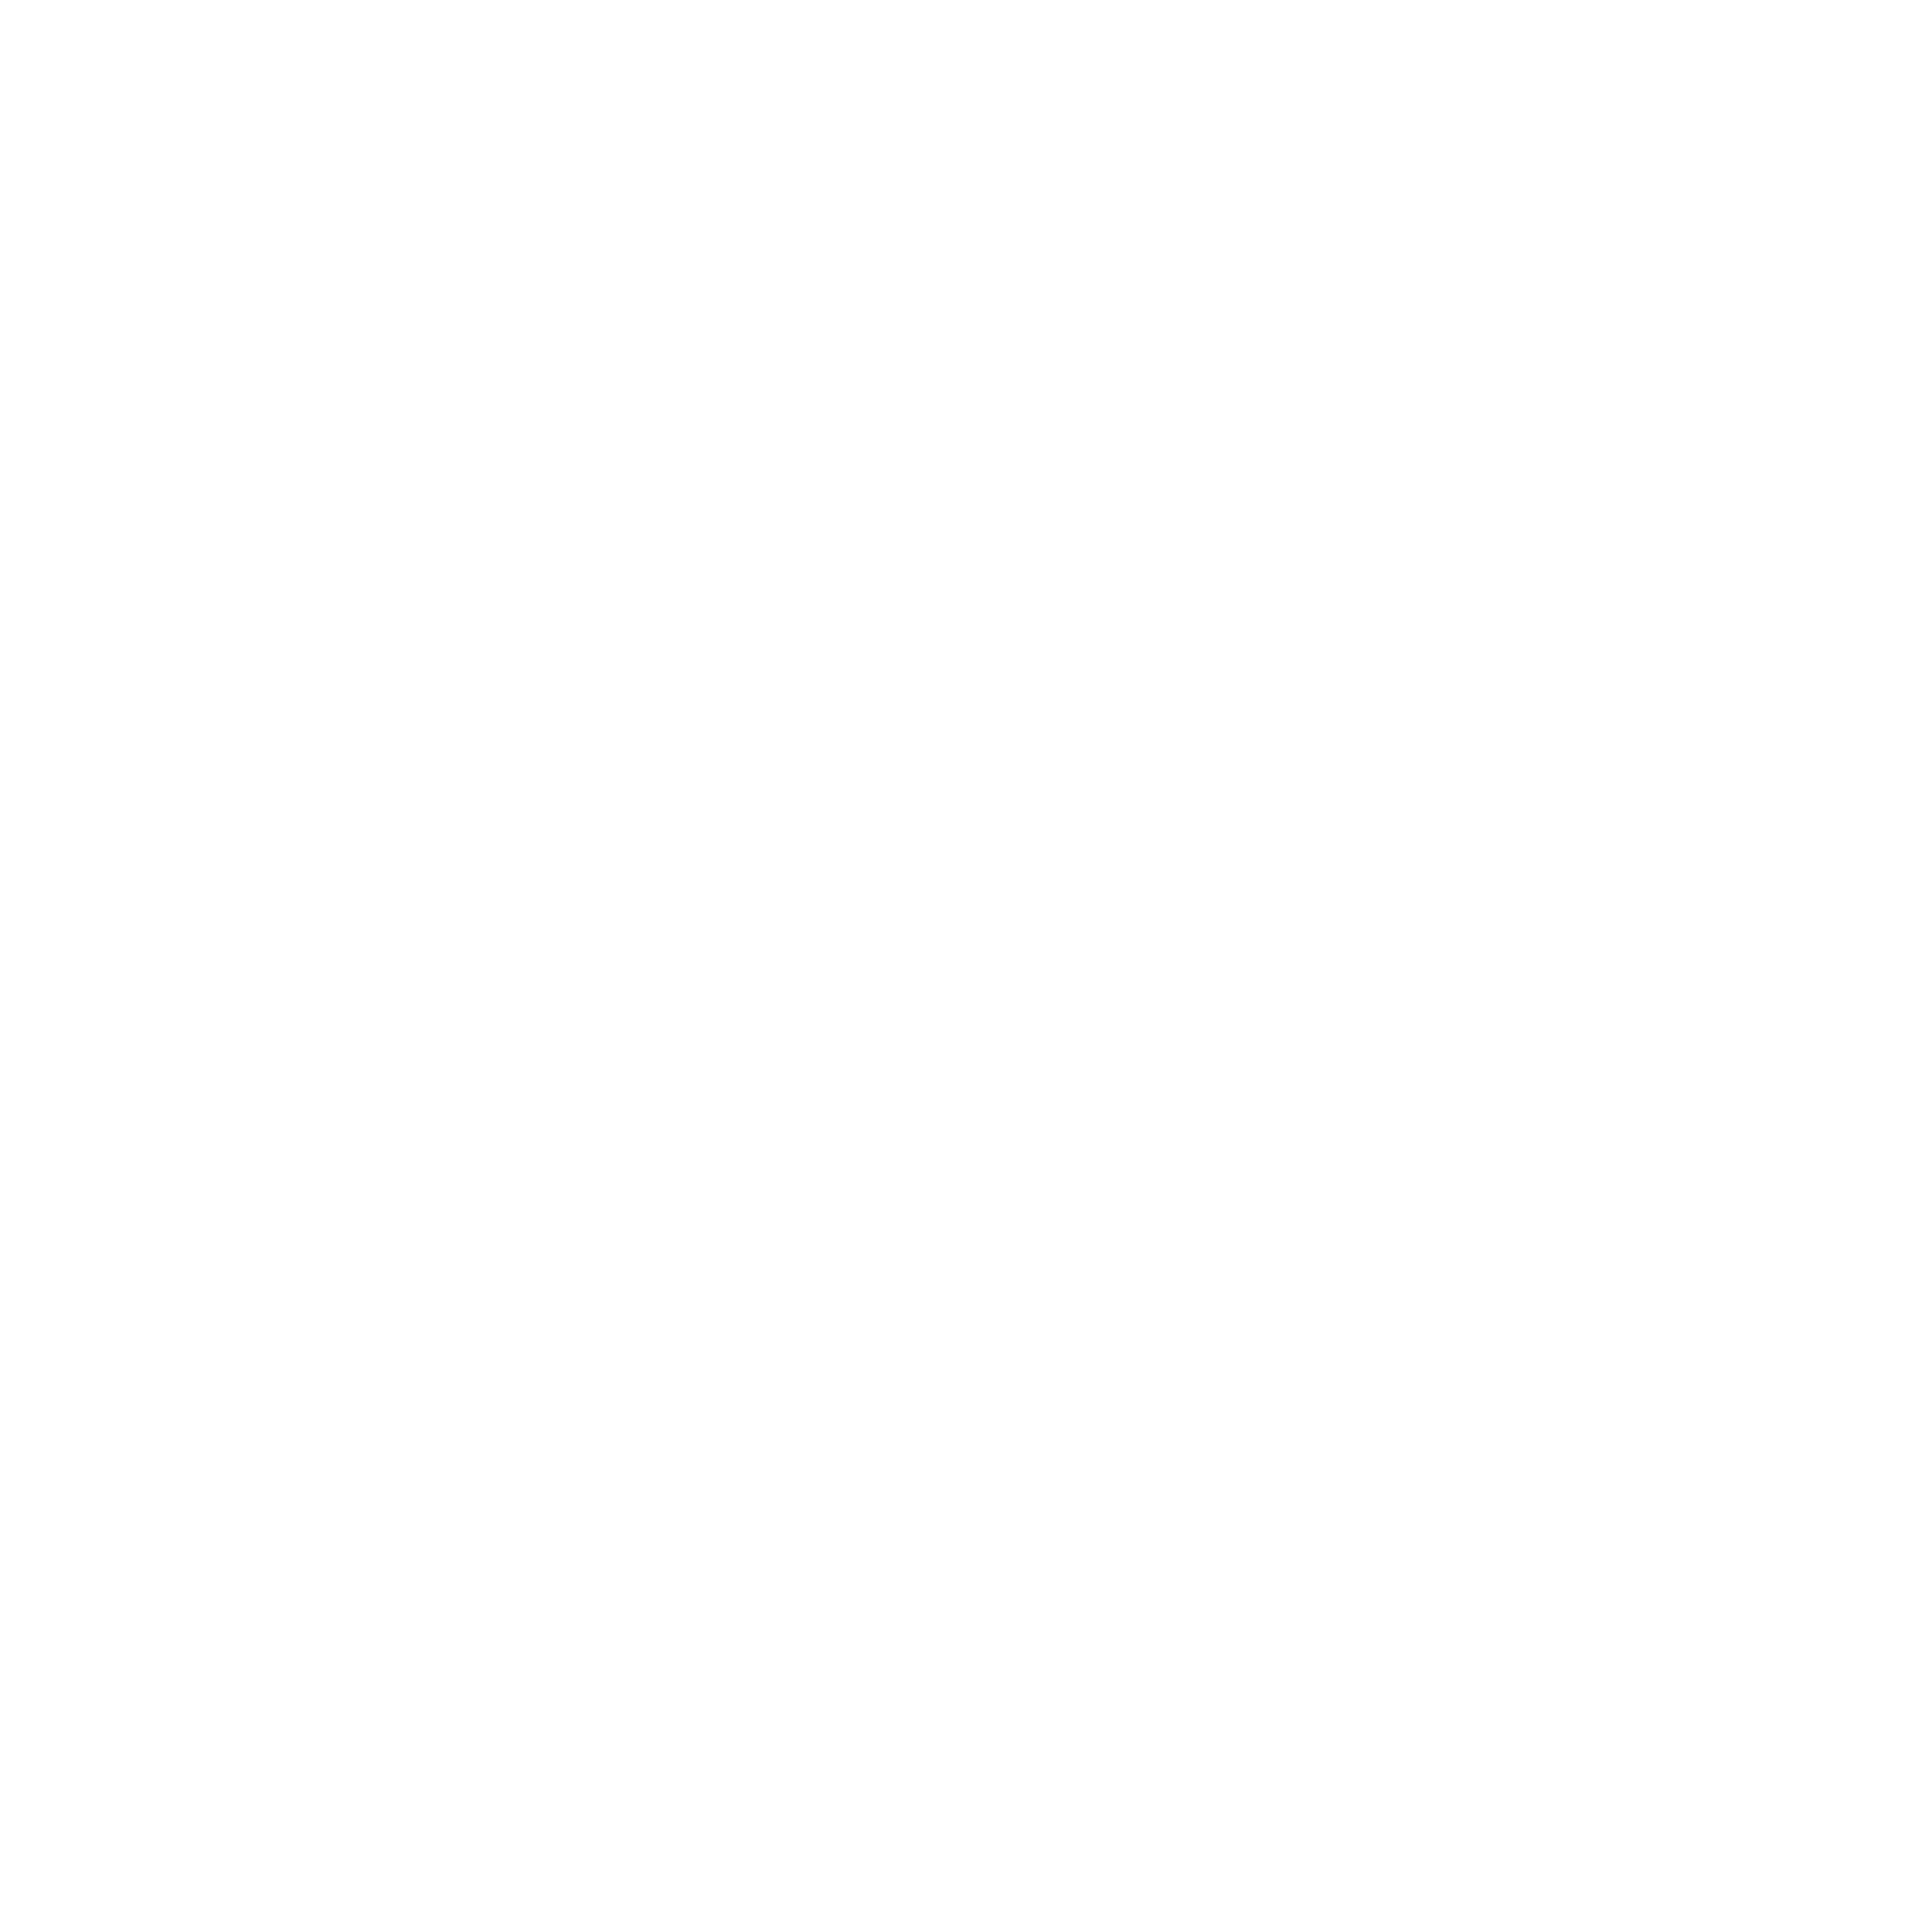 Medal drawing honor. Honors college in white